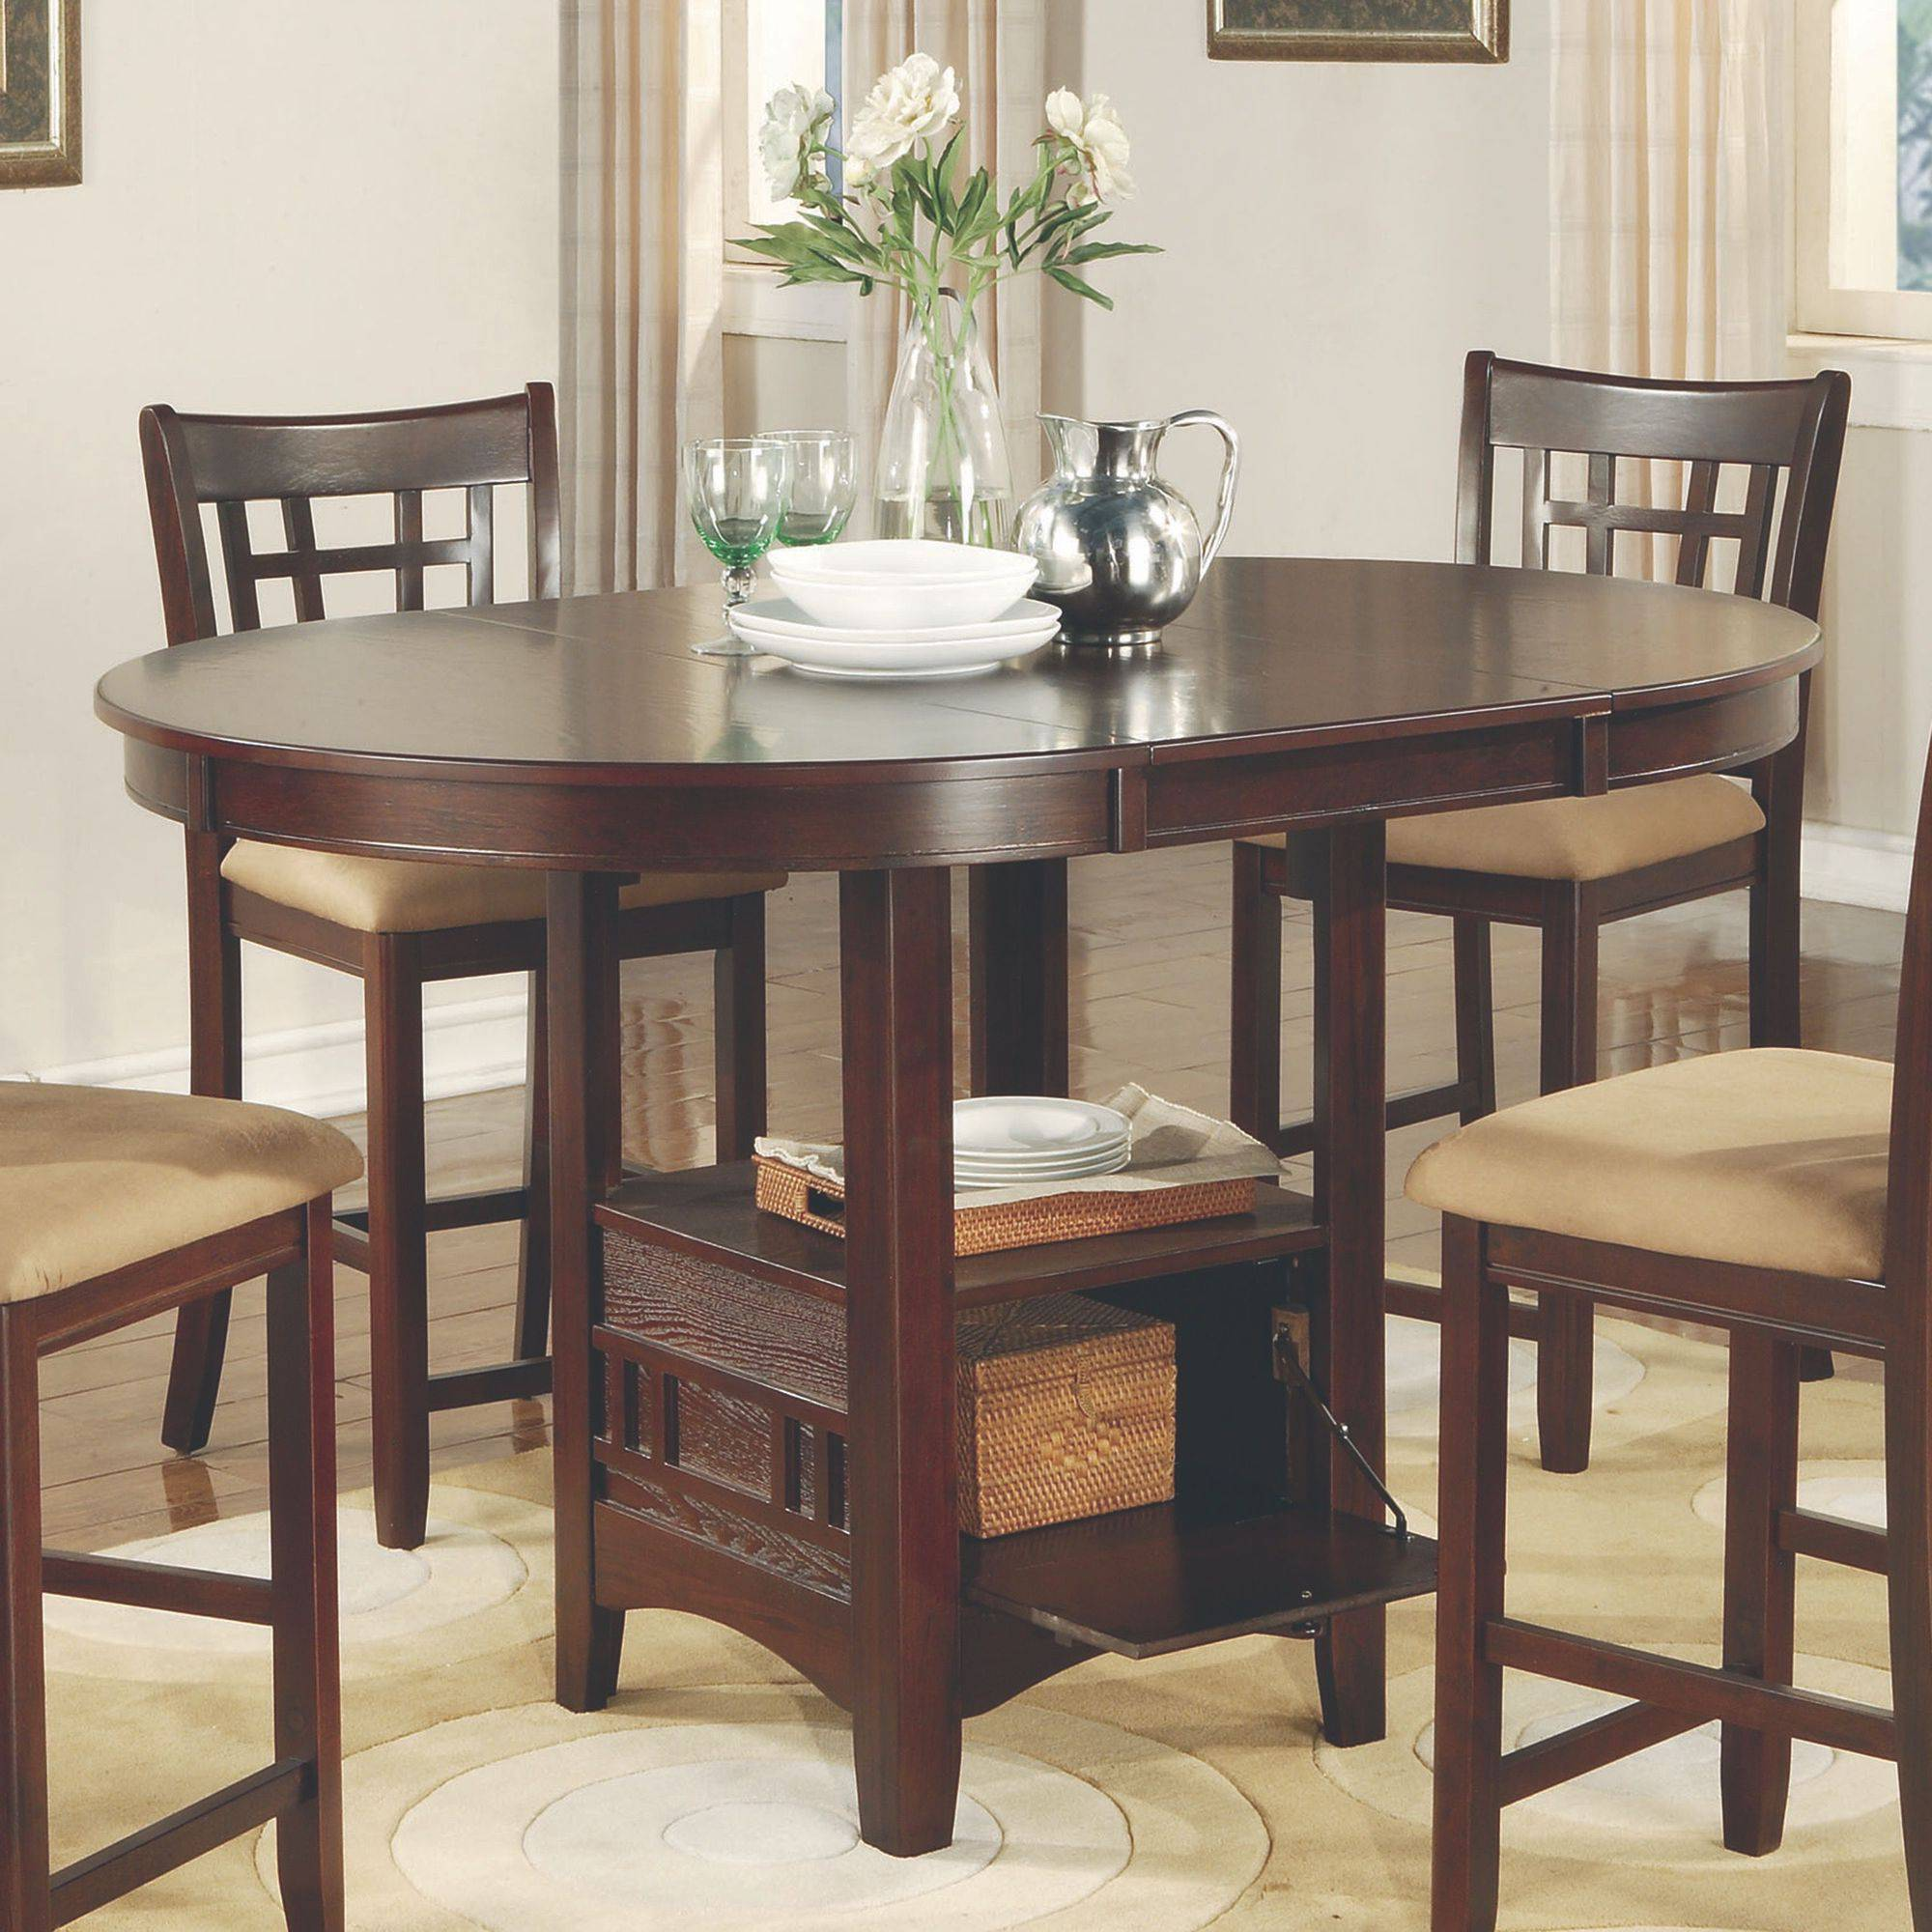 Coaster Company Lavon Dining Table in Warm Brown, Counter Height ...